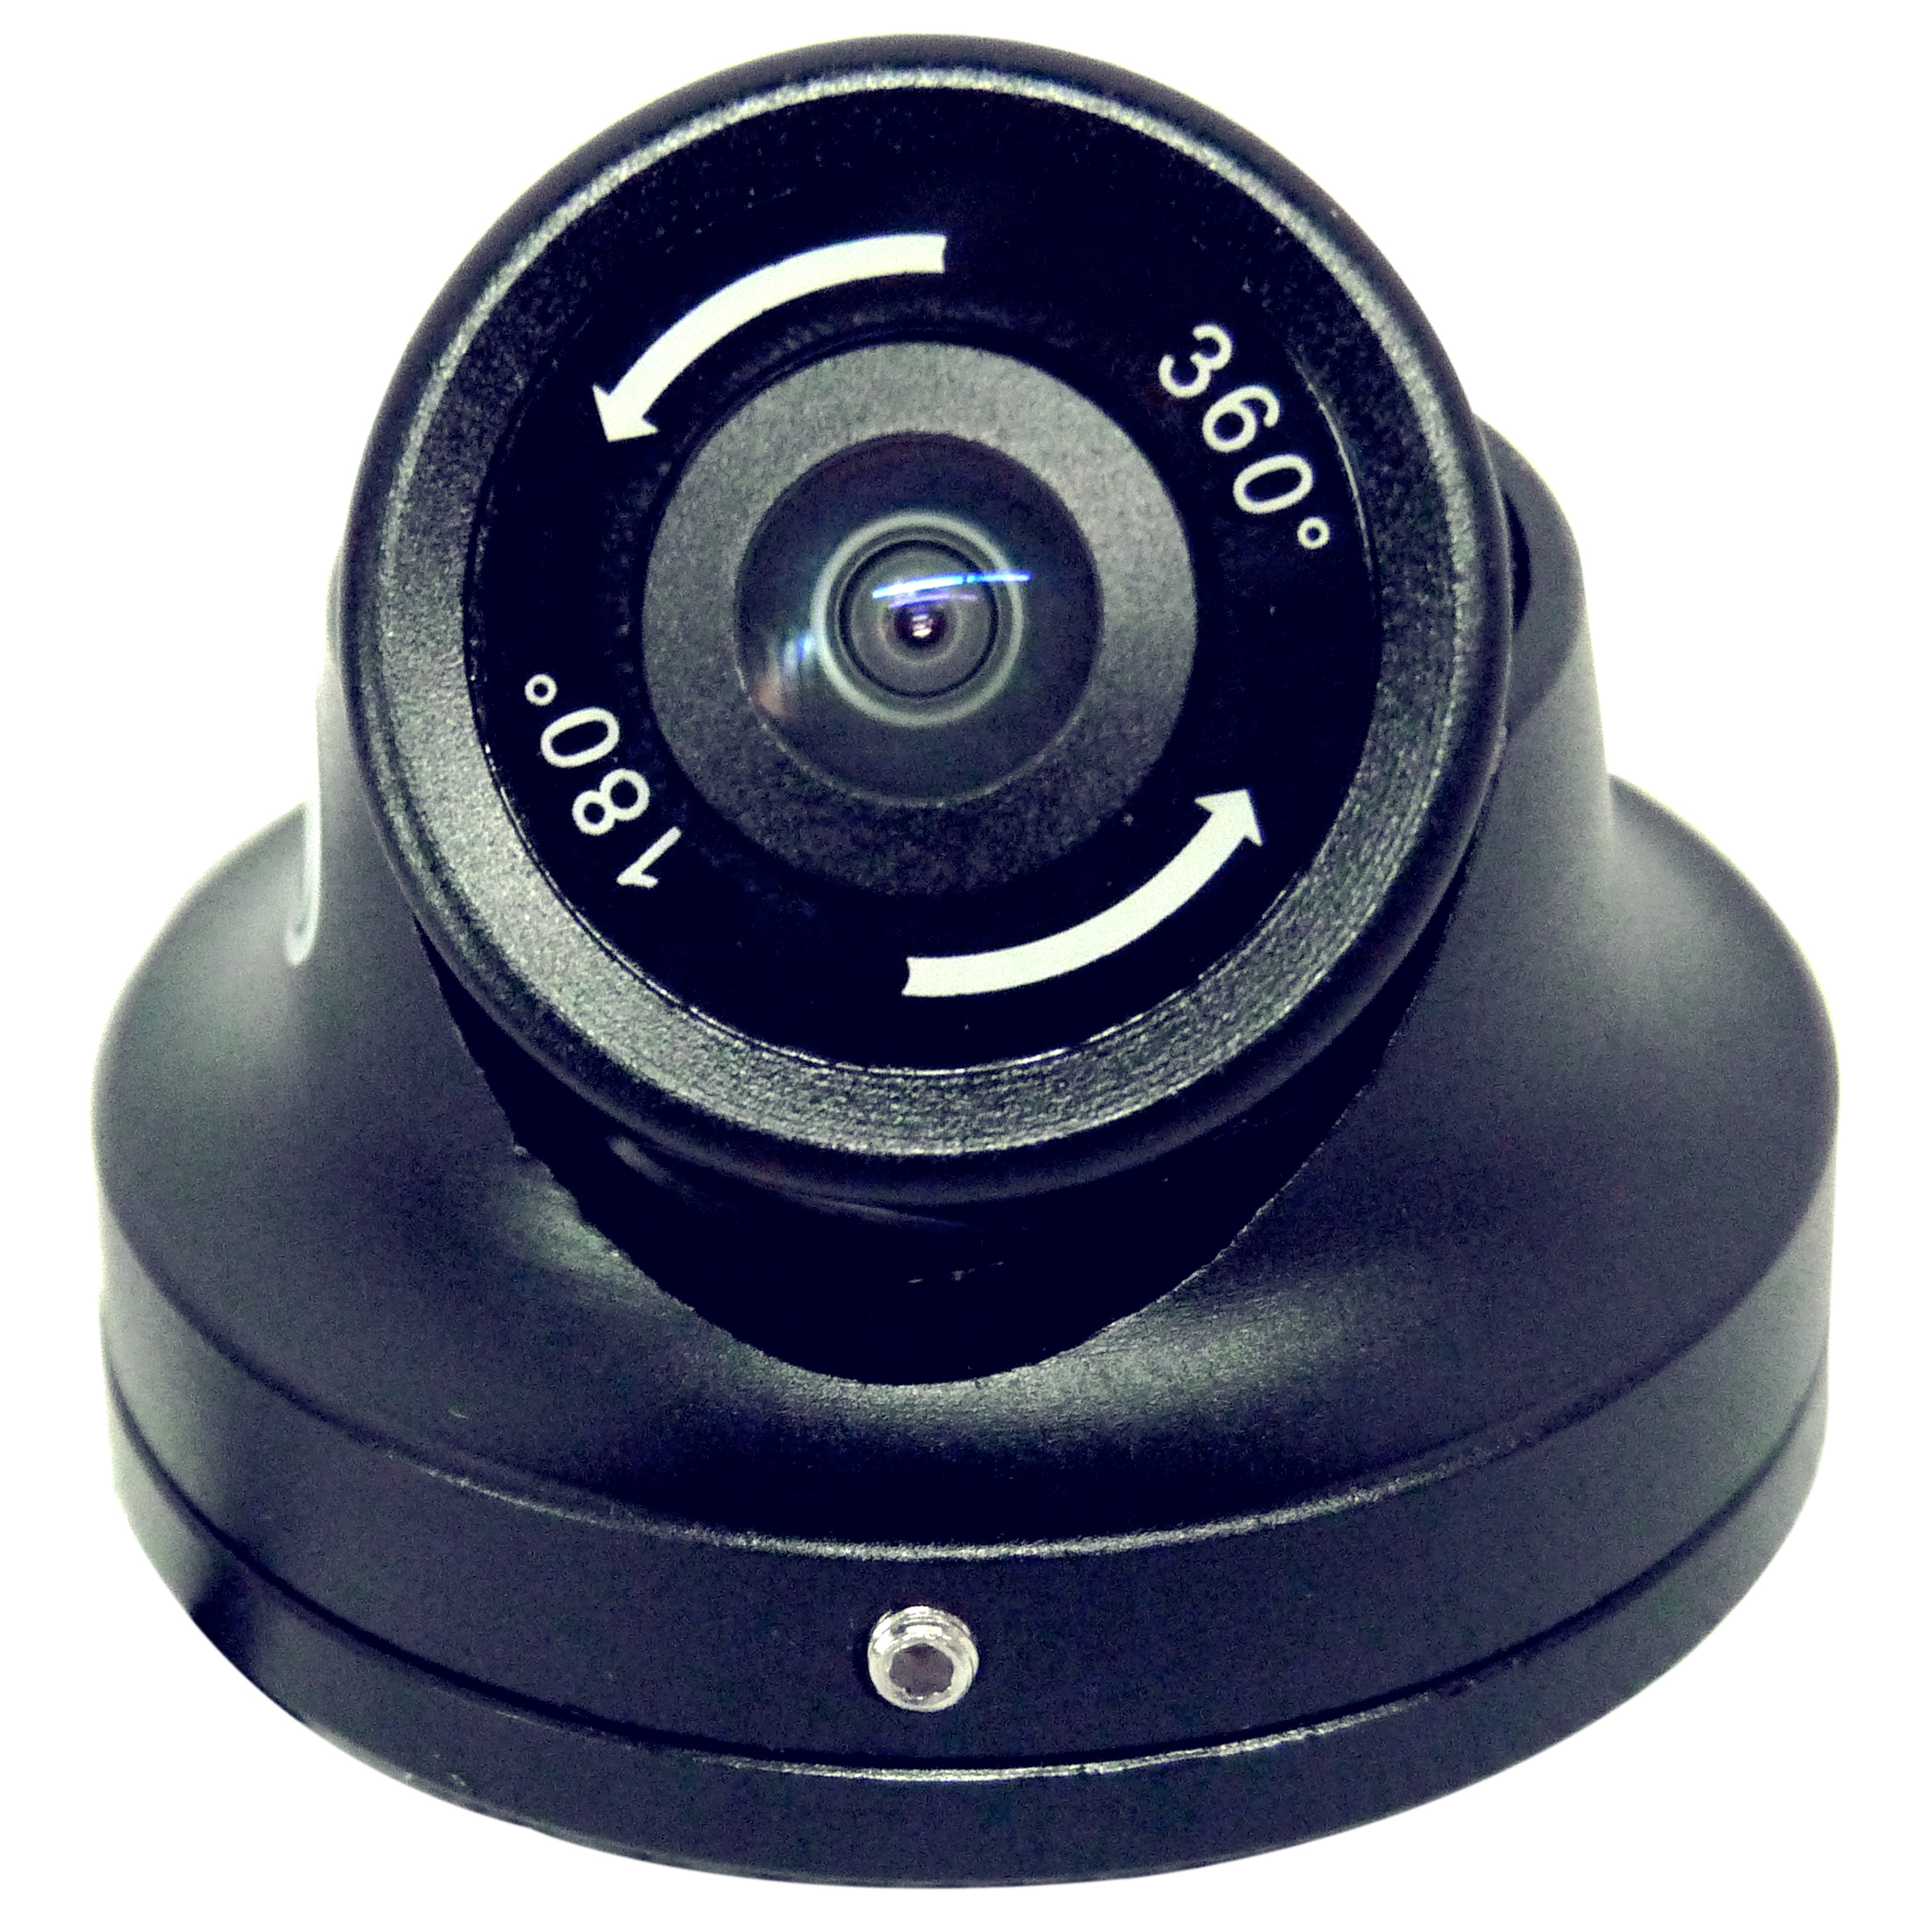 DBS 213G - 600TVL CCTV 360° Security Camera - 1/3'' Sony Super HAD CCD II